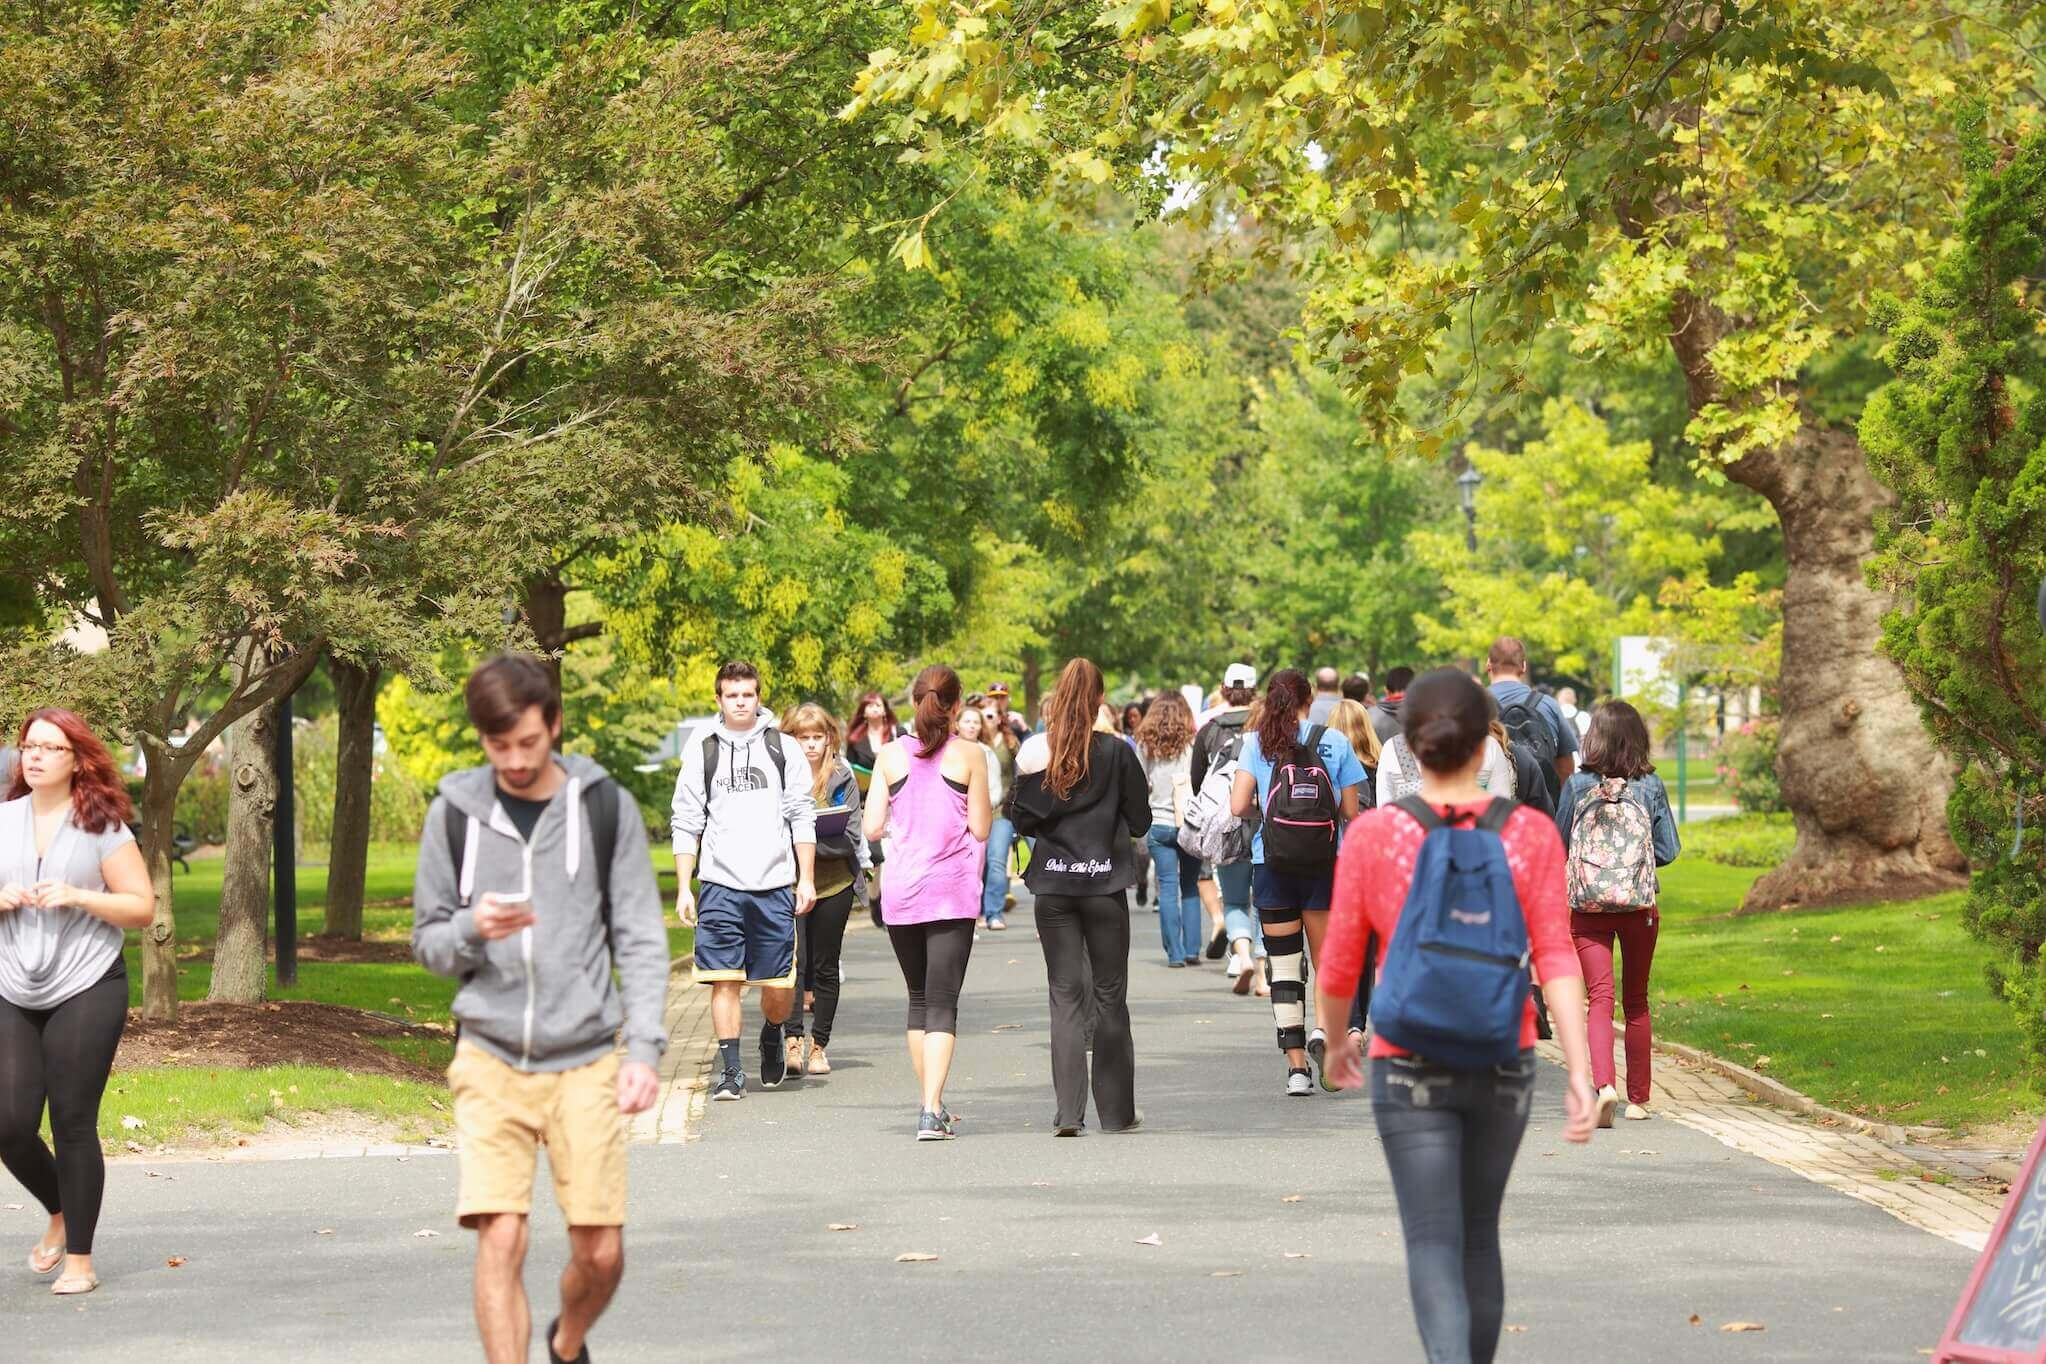 students walking the path on campus